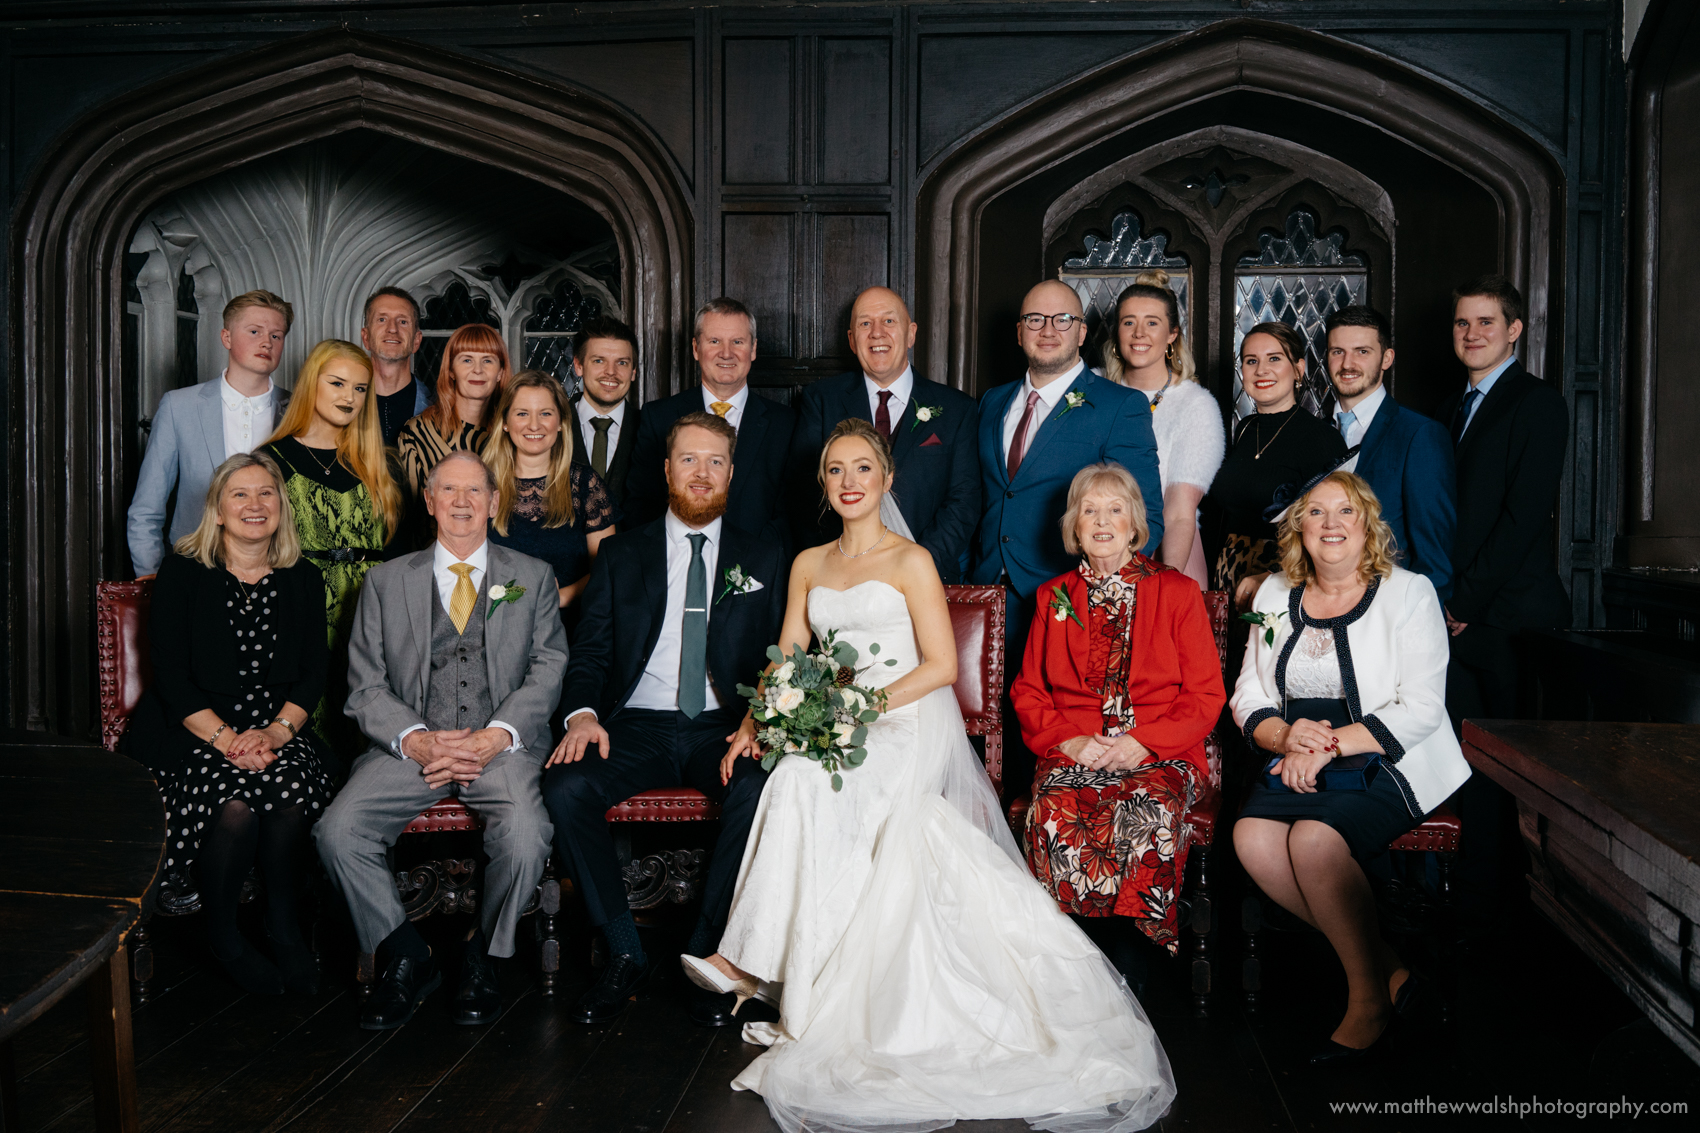 Family photographs are a long tradition at a wedding